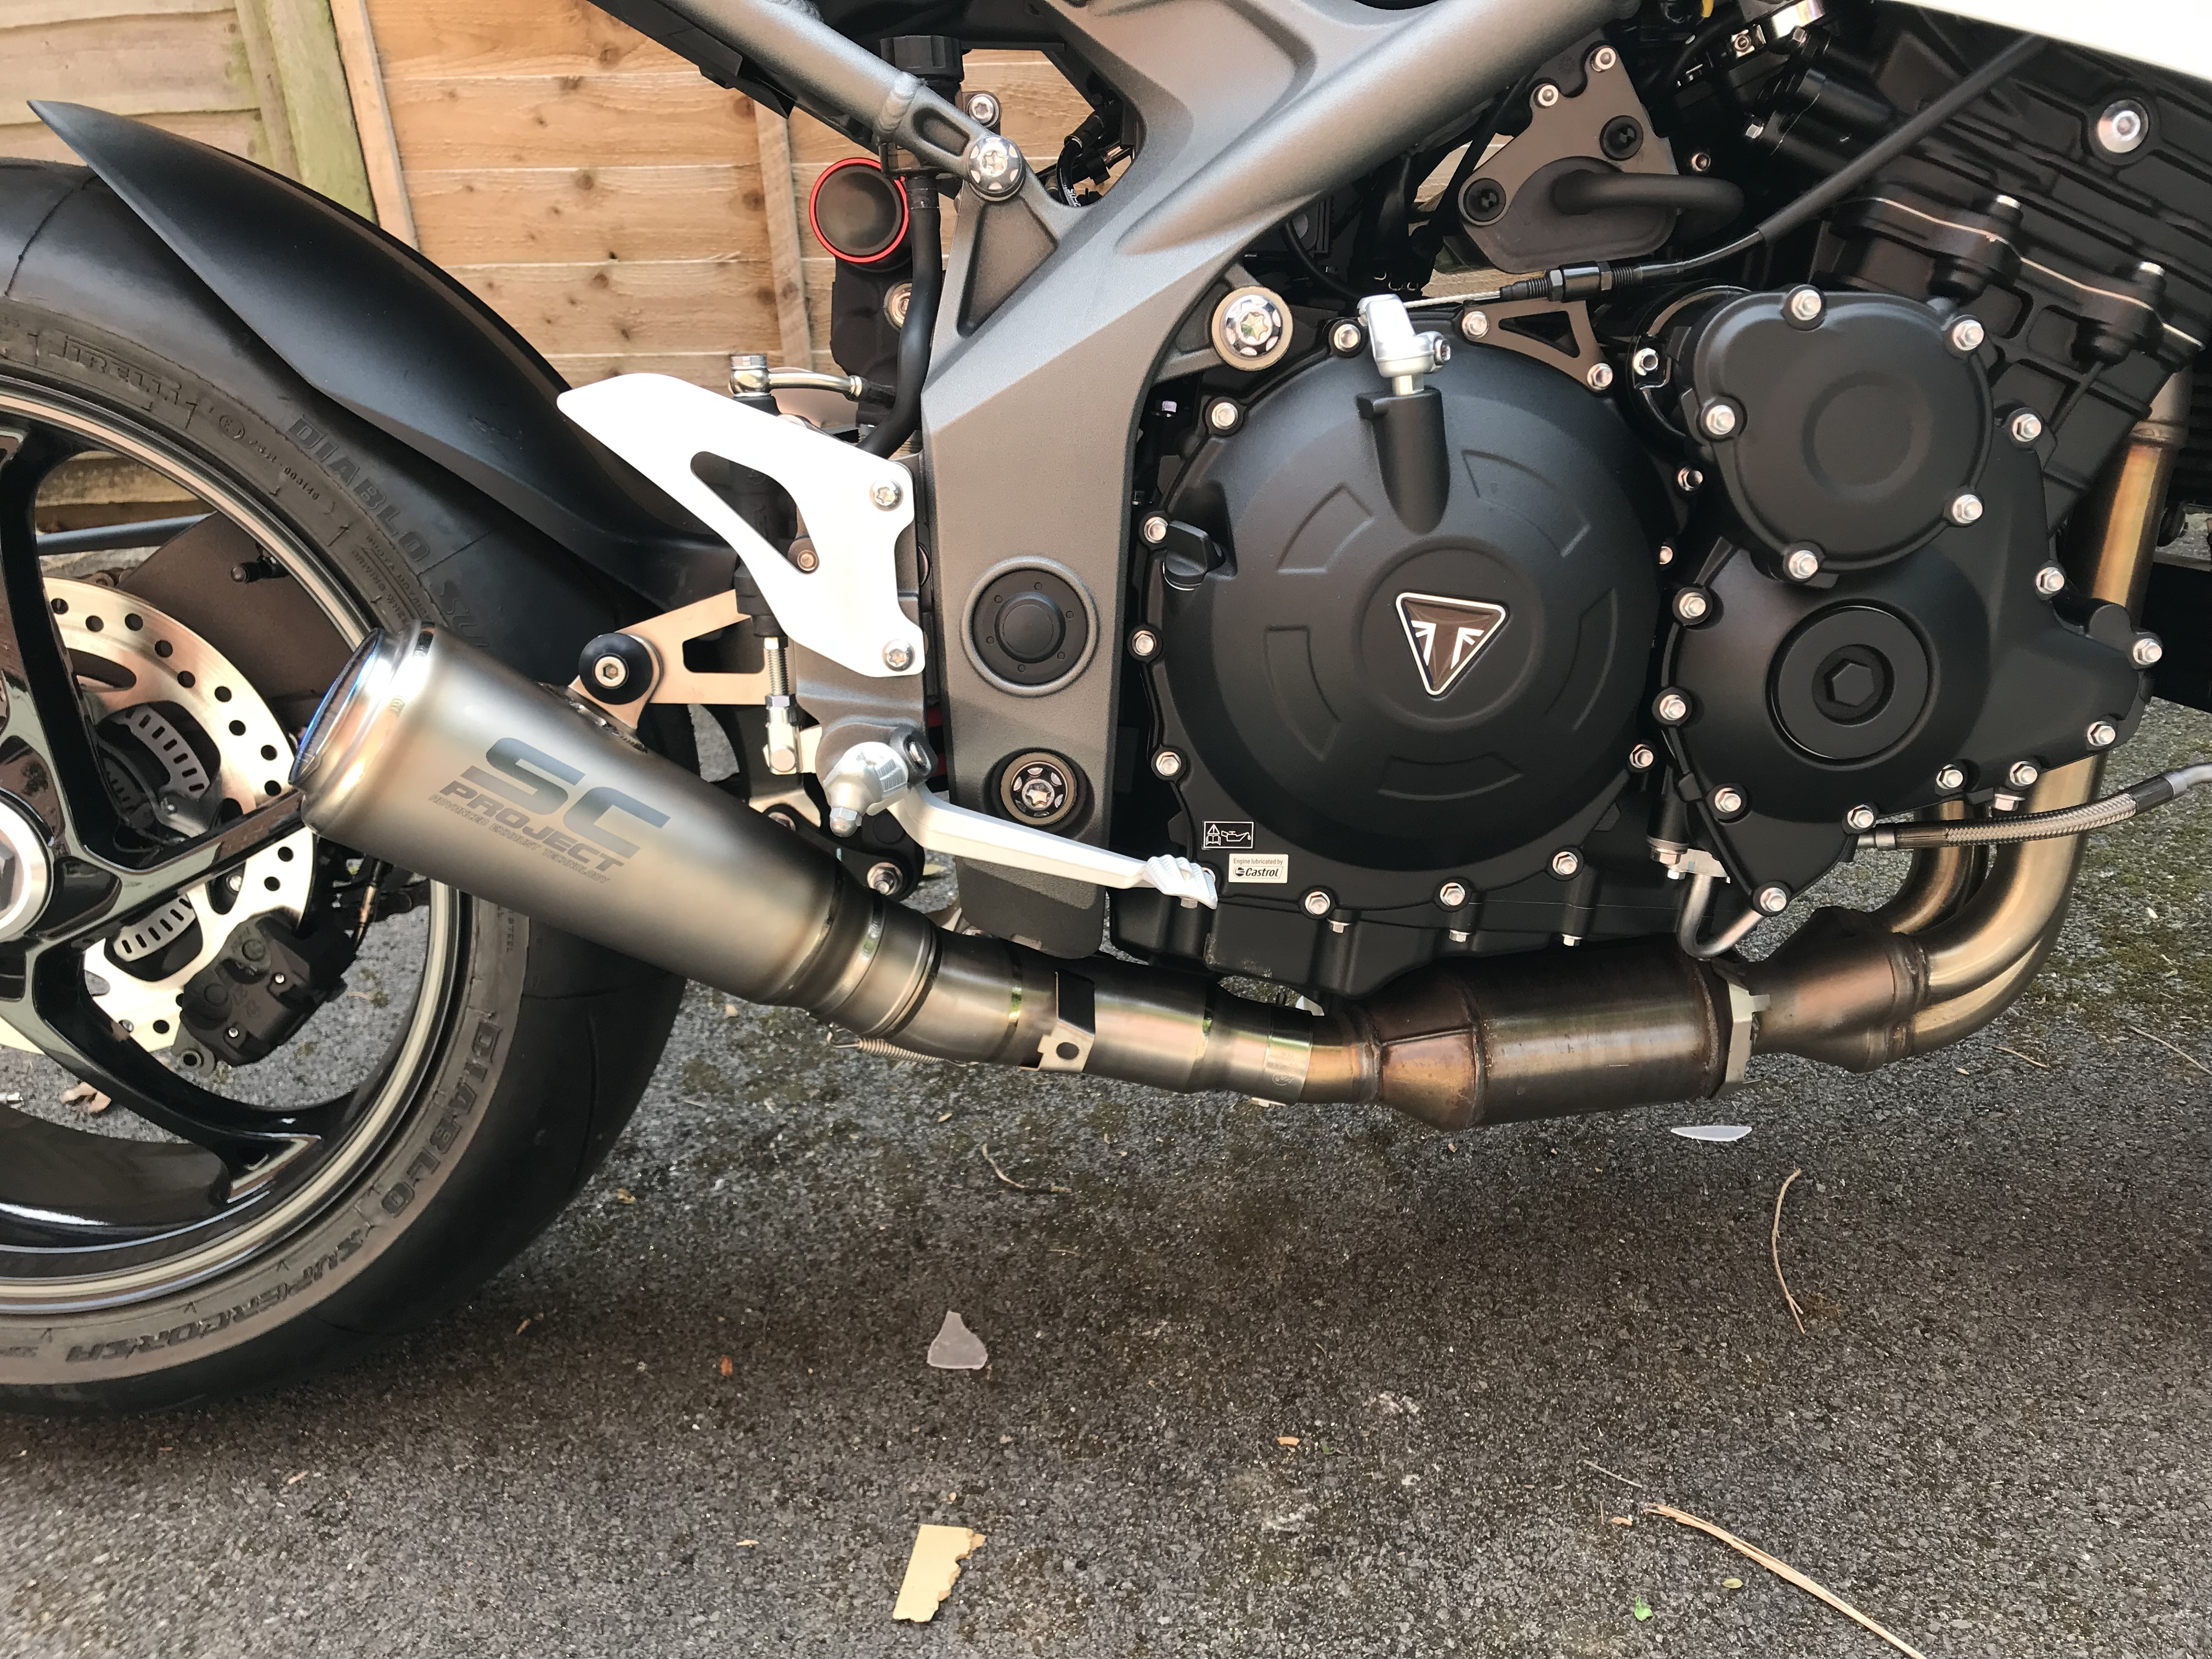 Sc Project S1 Gp Exhaust Arrived | Page 2 | The Triumph Forum